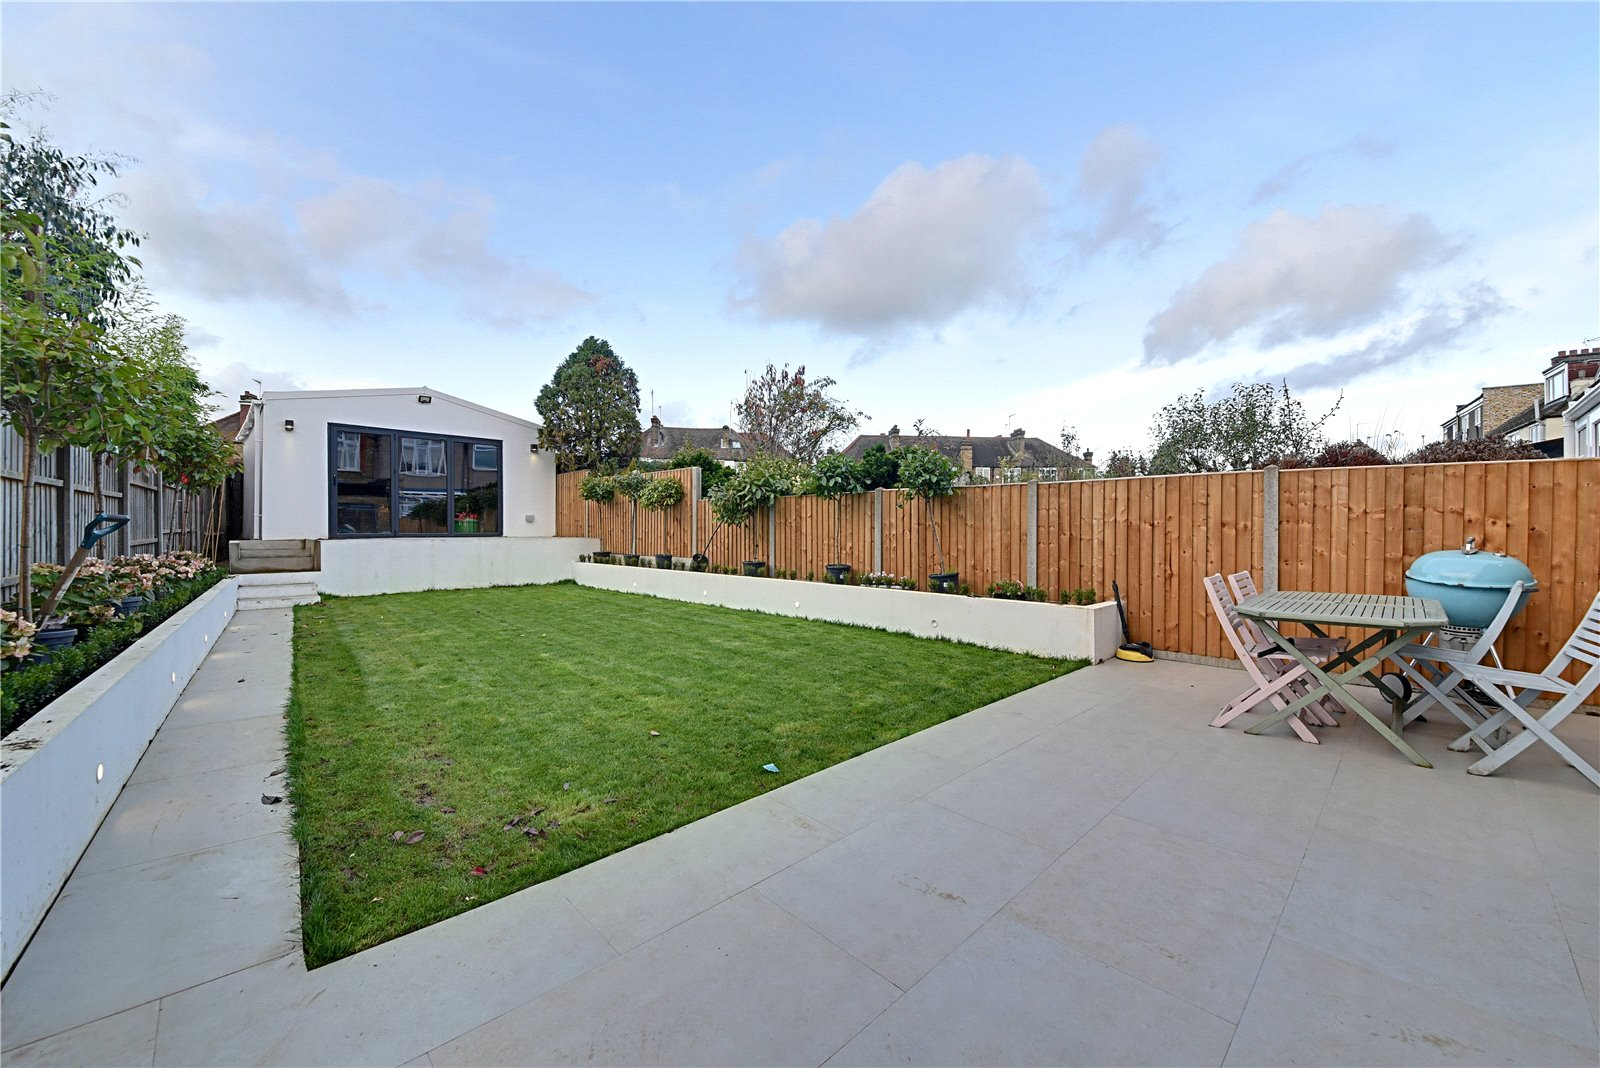 4 bed house for sale in Friern Barnet, N11 1HN 3